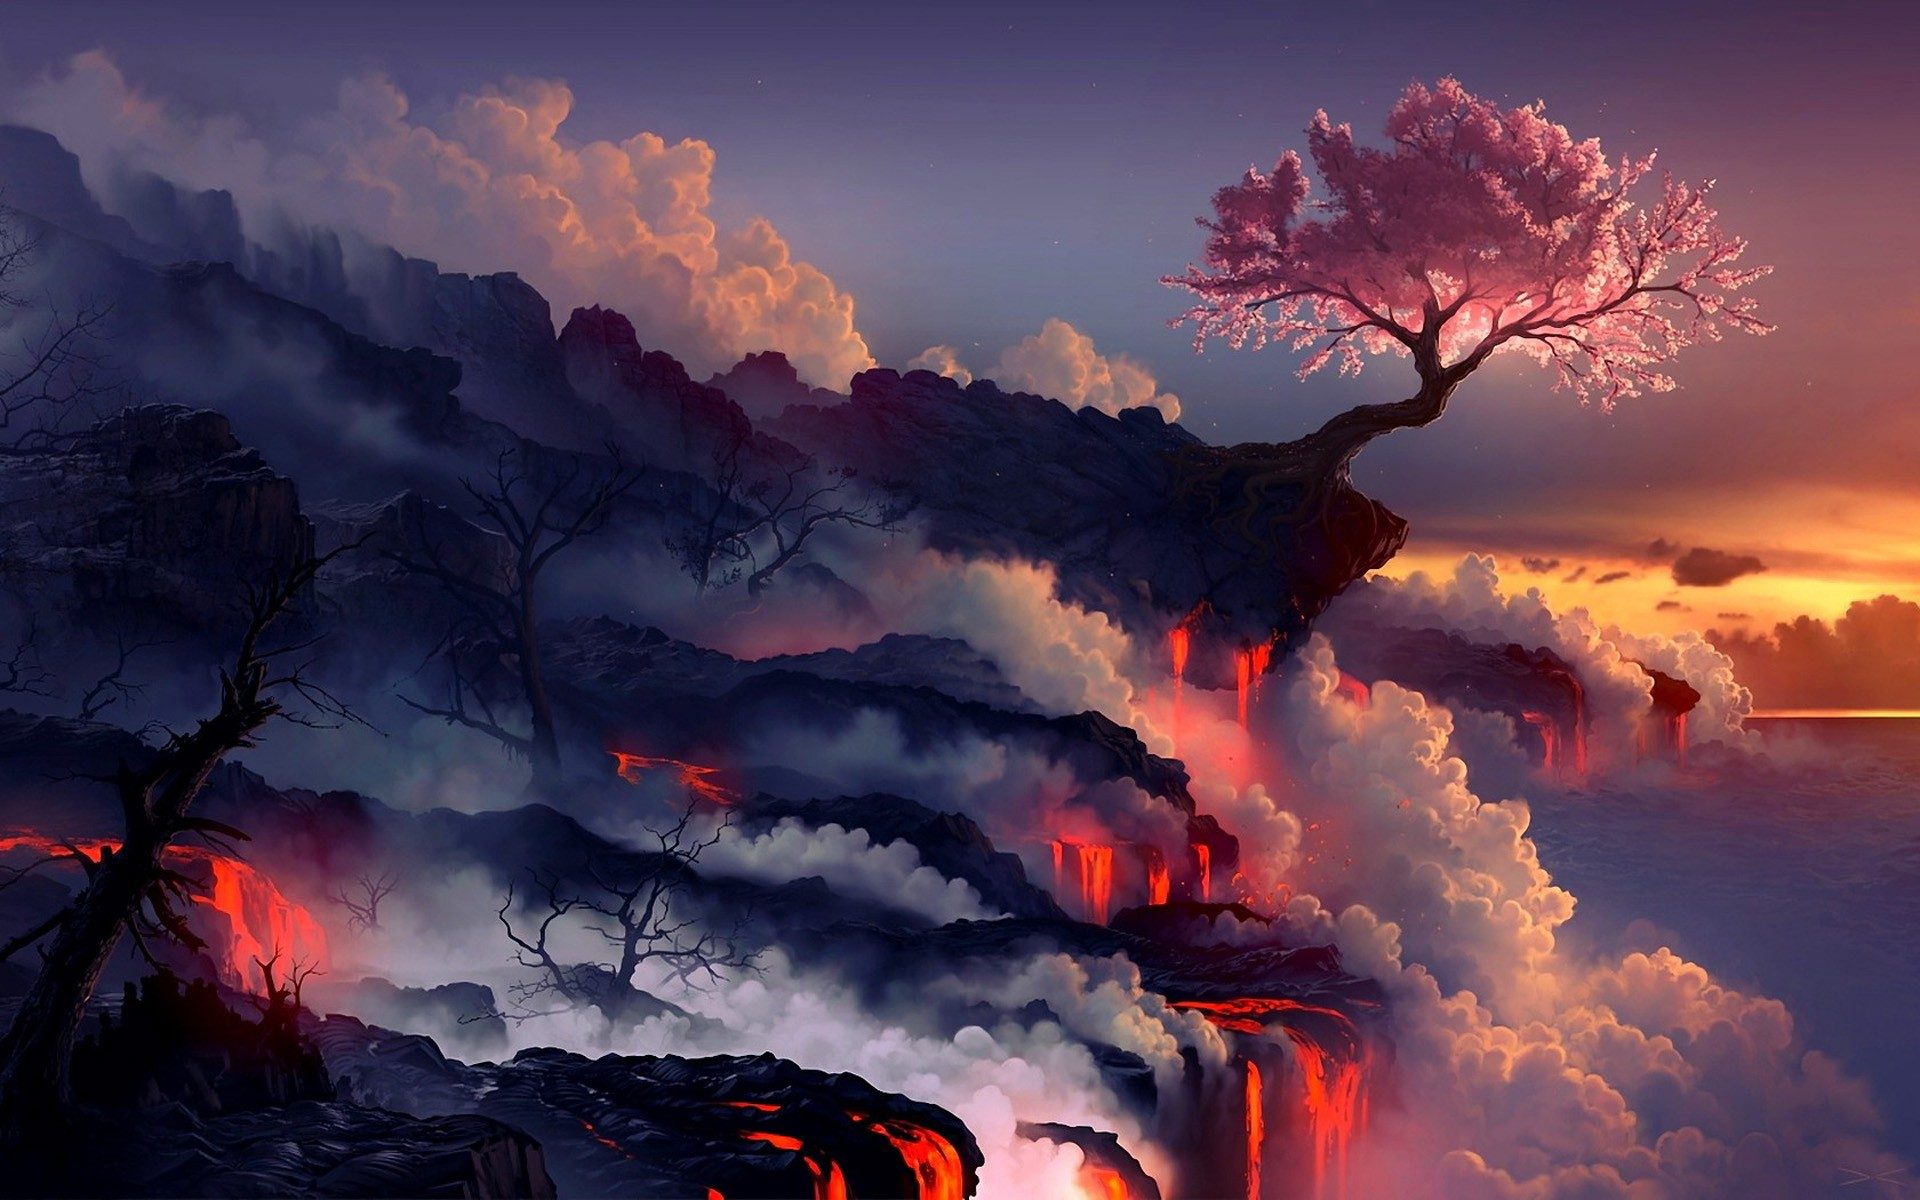 Landscapes cherry blossoms trees sea lava smoke rocks artwork drawings 1920x1200